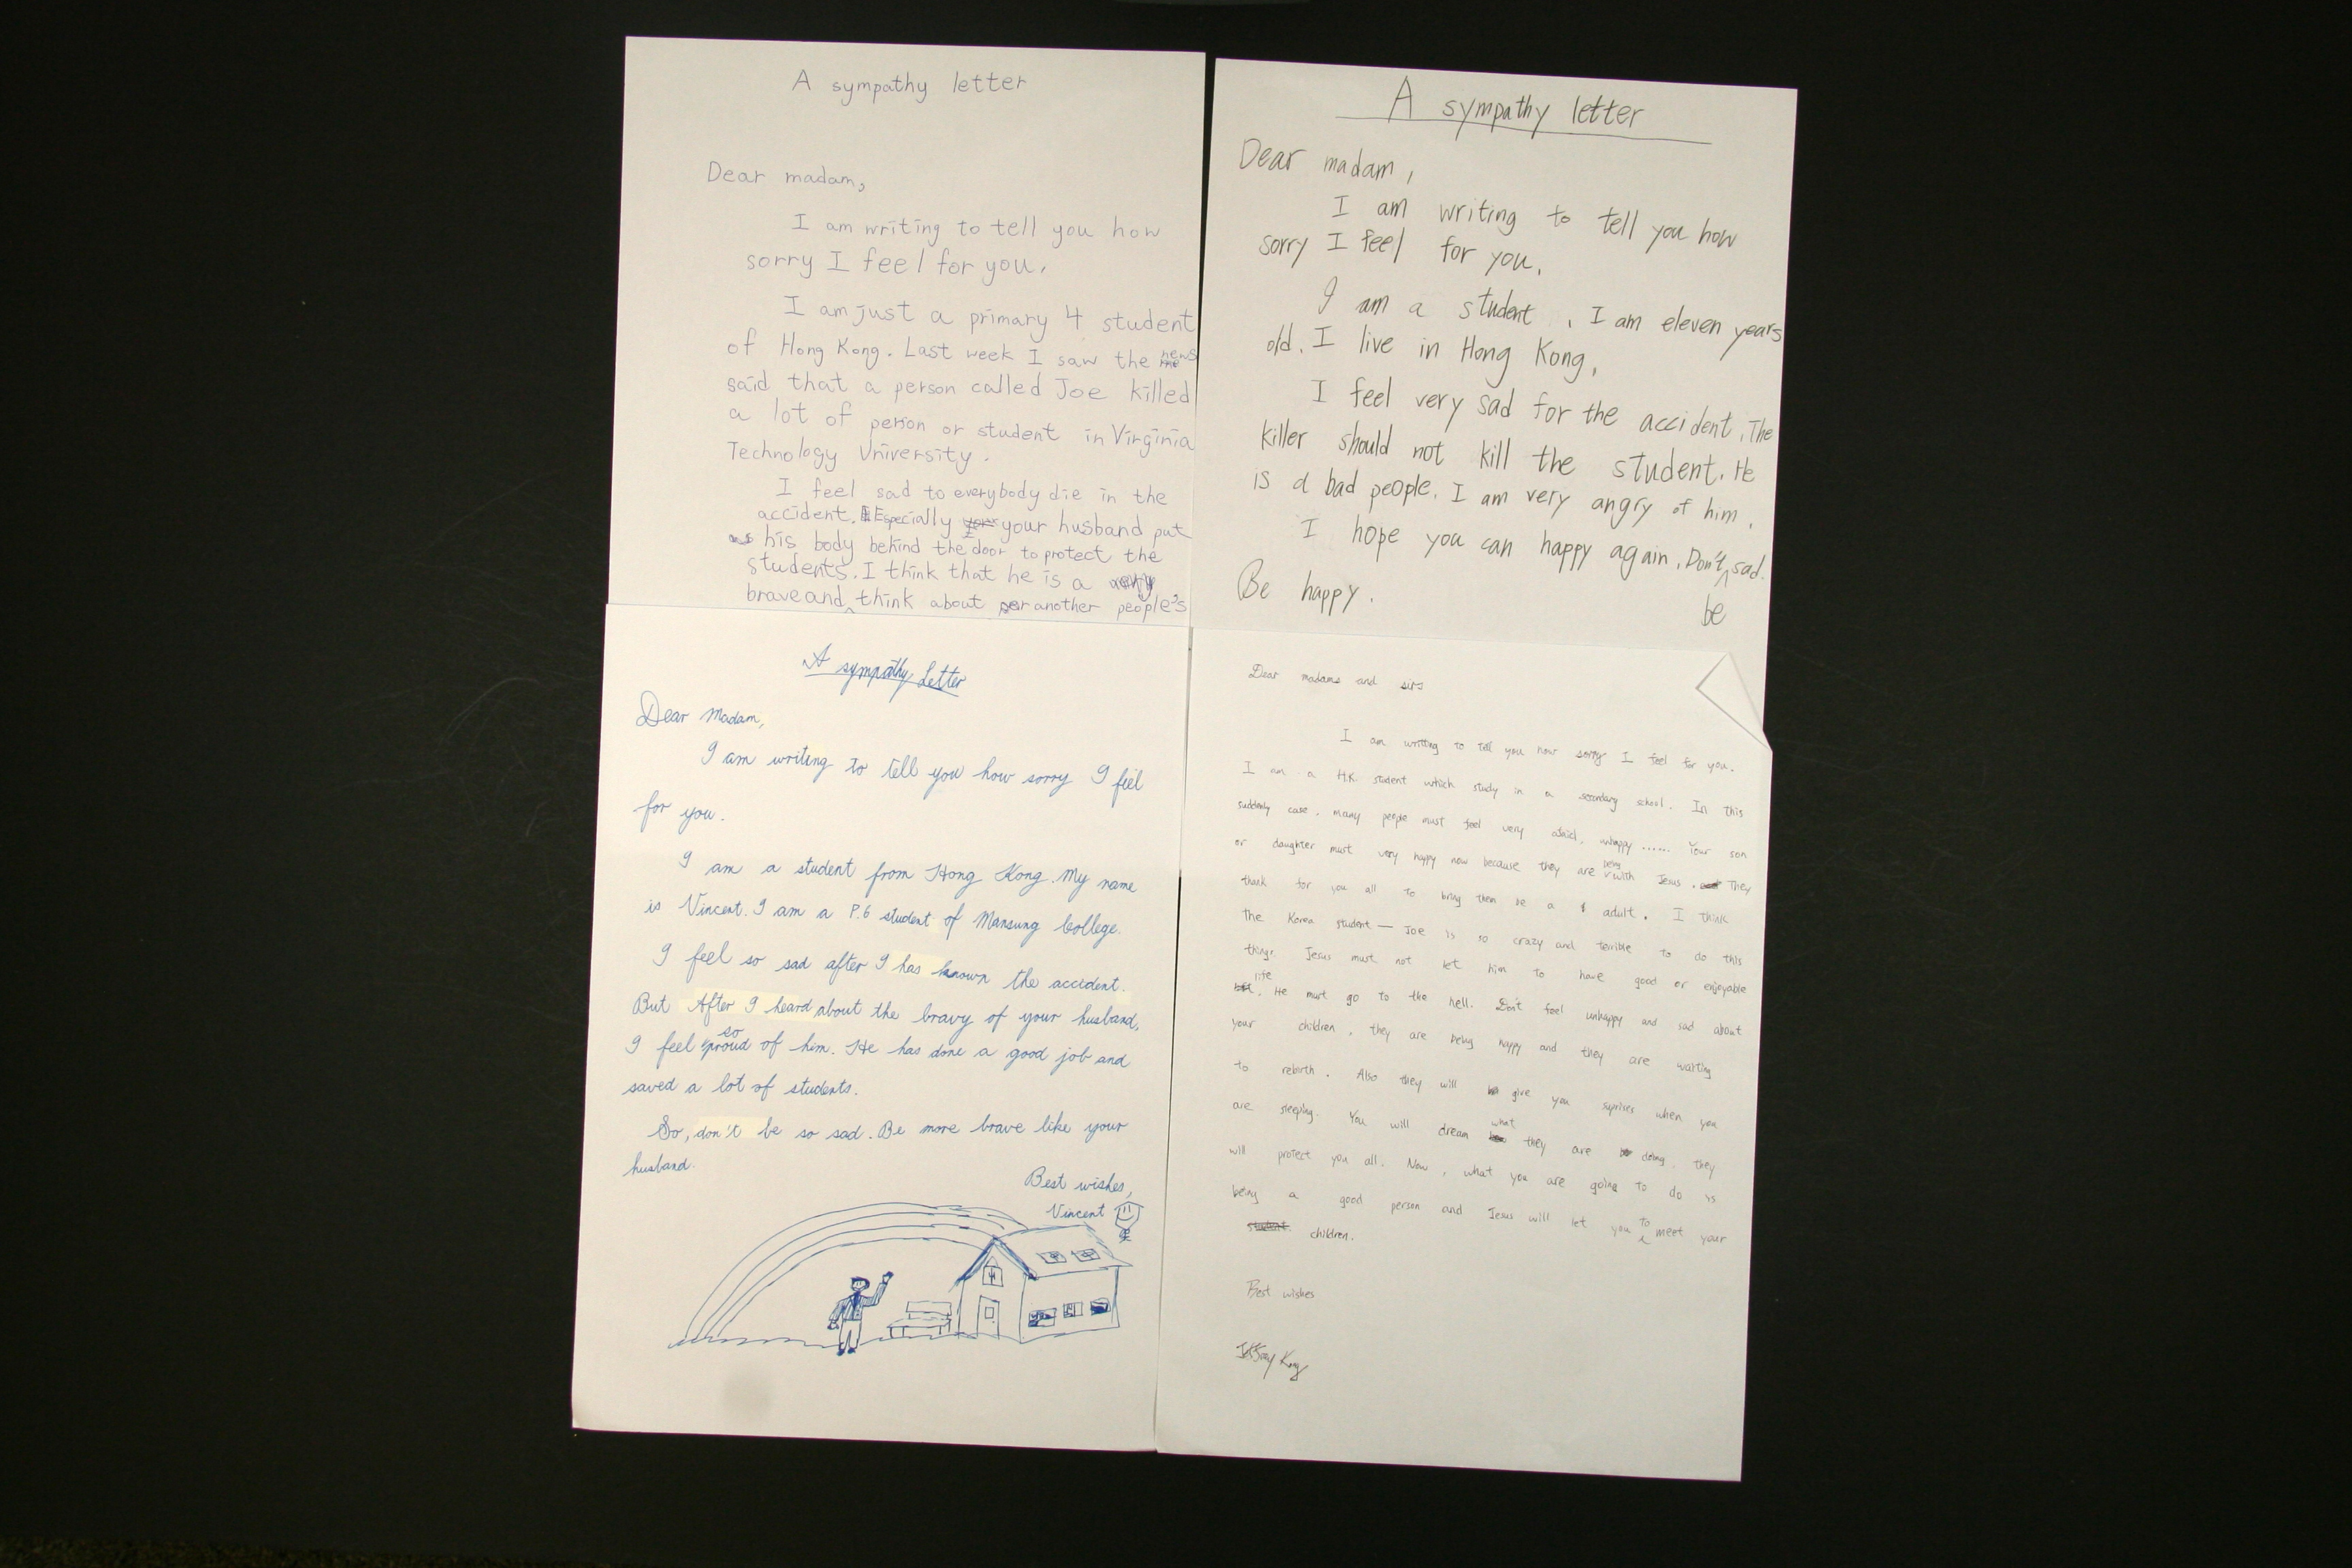 Letters from Primary School of Mansung College